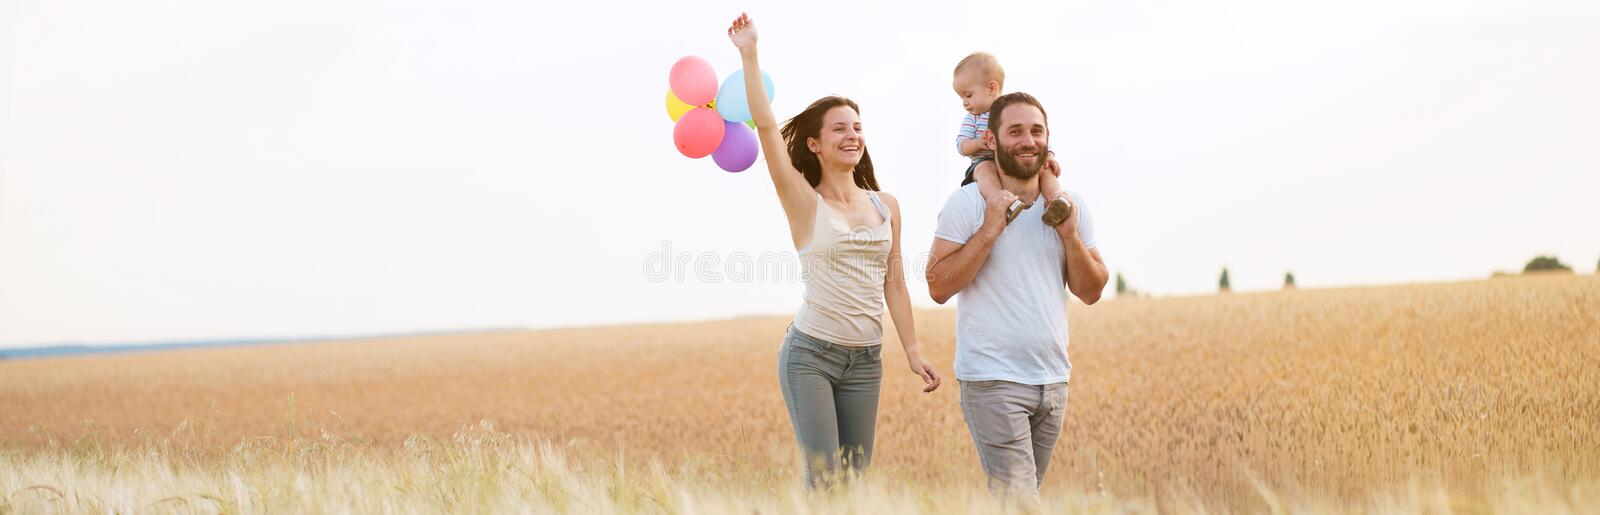 Happy family of mom, dad and son walking outdoors royalty free stock photo